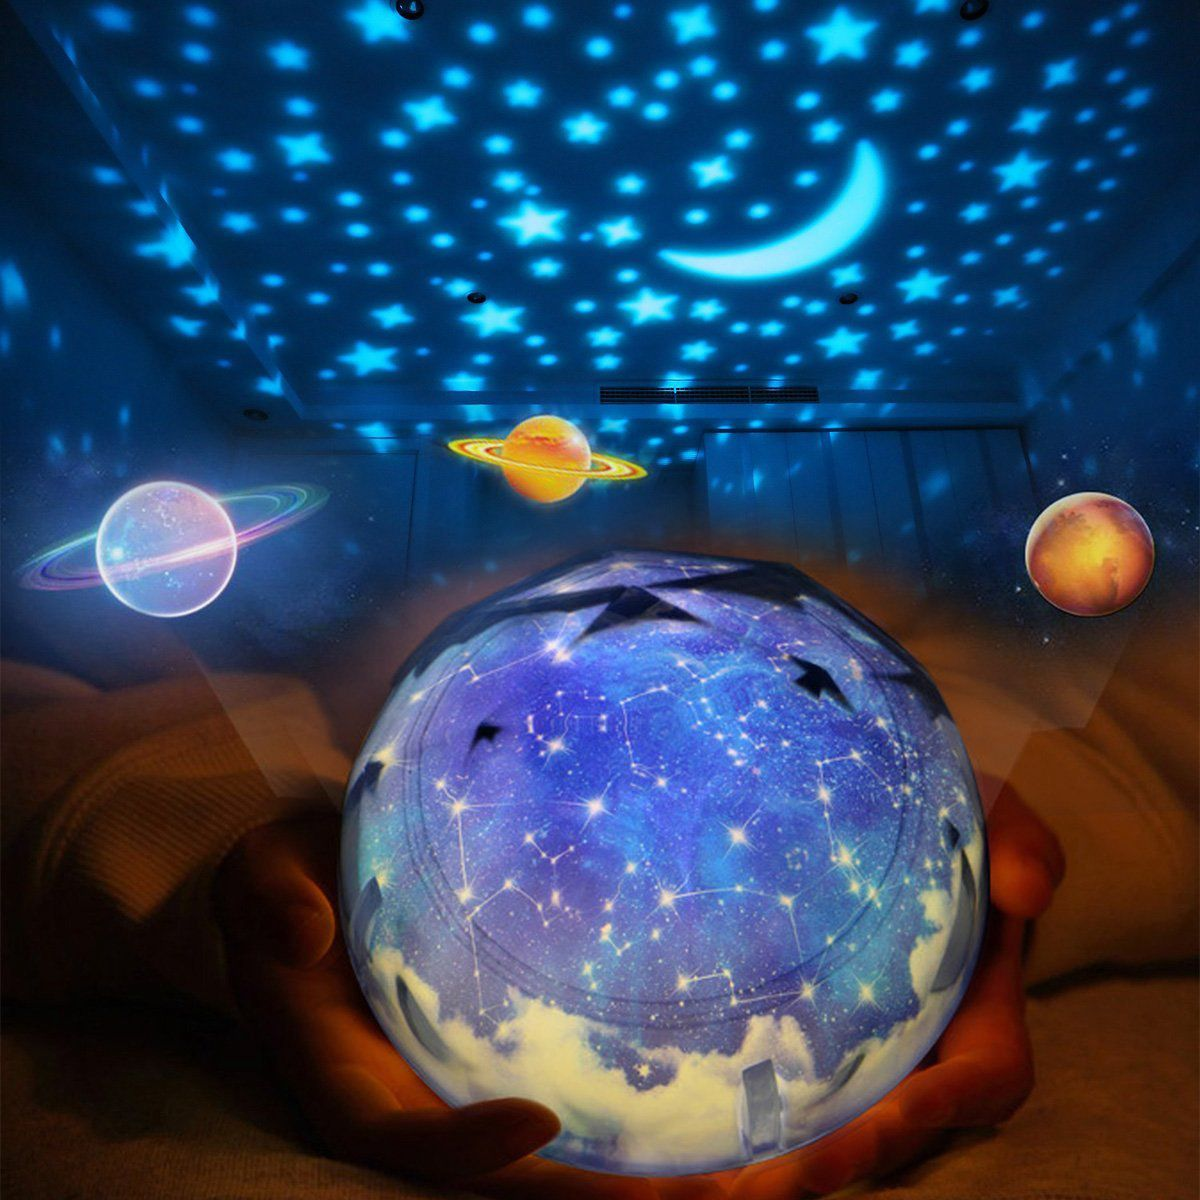 Star Night Lights for Kids Universe Cosmos Starry Sky Light LED Projector Rotating Lamp Nightlight Moon Sea World Decorative Star Night Lights for Kids Universe Cosmos Starry Sky Light LED Projector Rotating Lamp Nightlight Moon Sea World Decorative